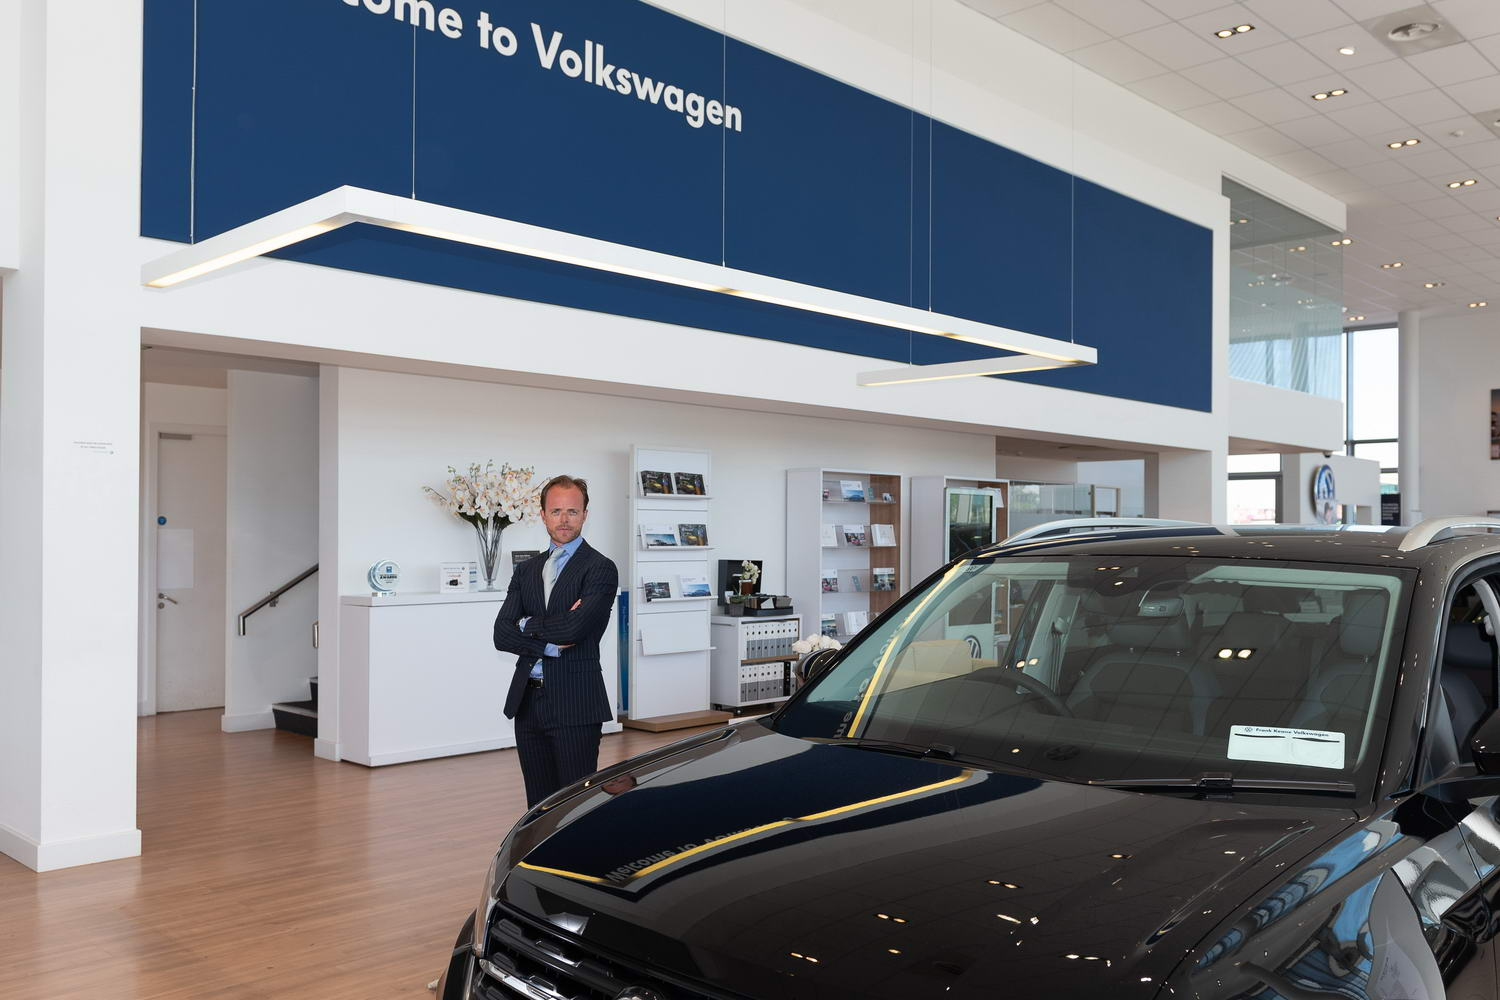 Car News | Car dealers reporting 'consistent, strong demand' | CompleteCar.ie